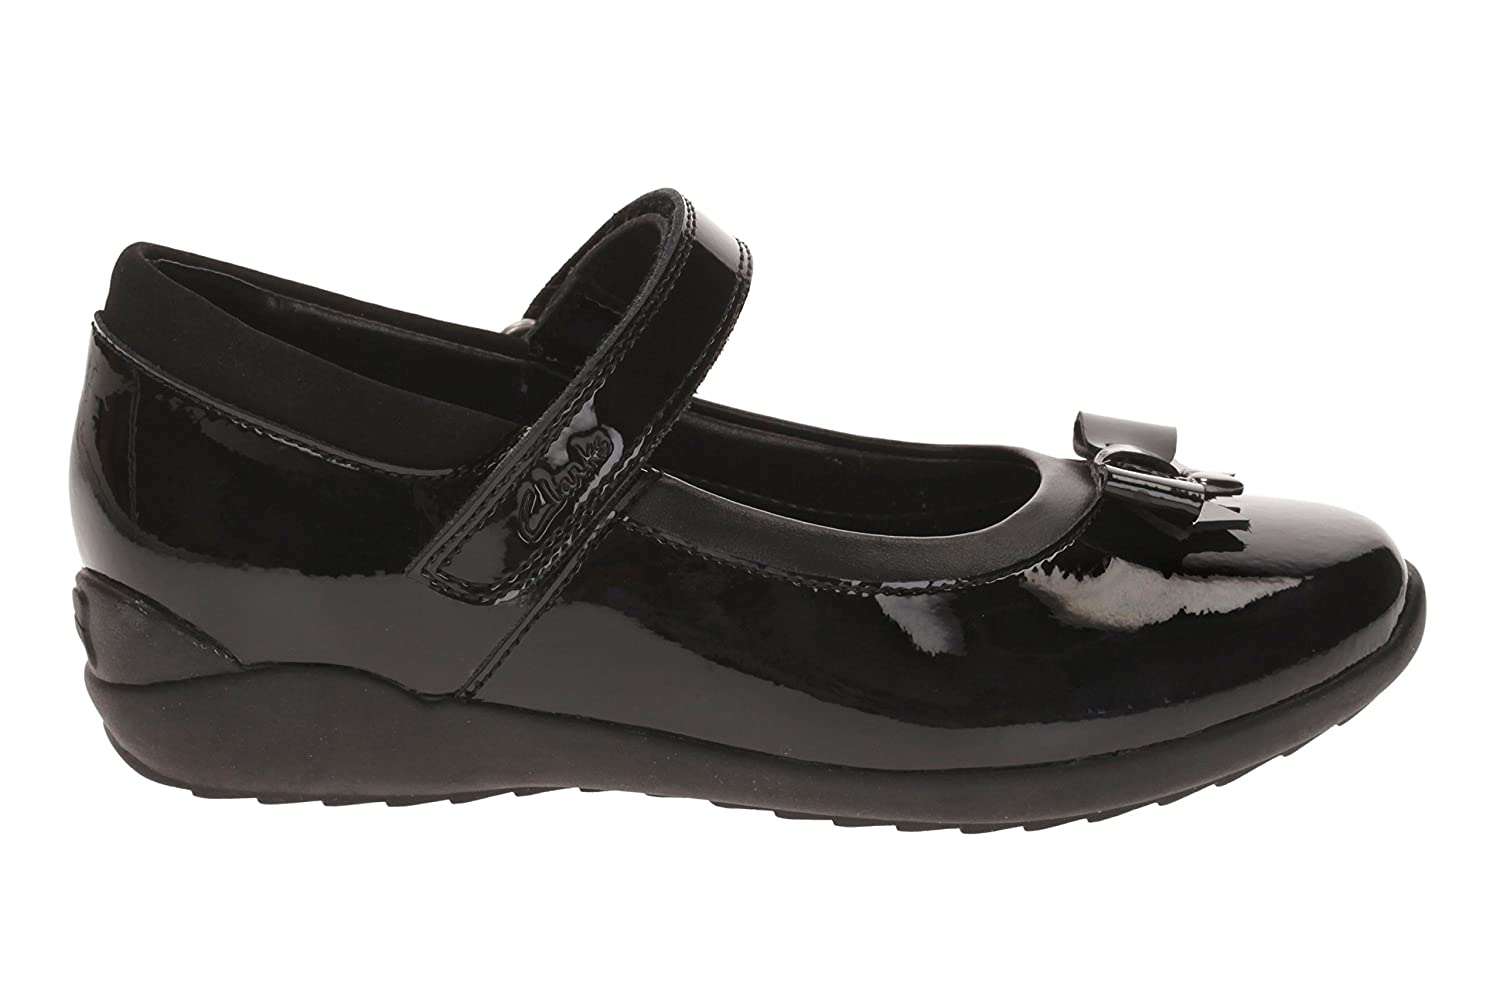 8ade4f4e6 Clarks 1889-06F TING Fever INF Black Patent Kids School Shoes   Amazon.co.uk  Shoes   Bags